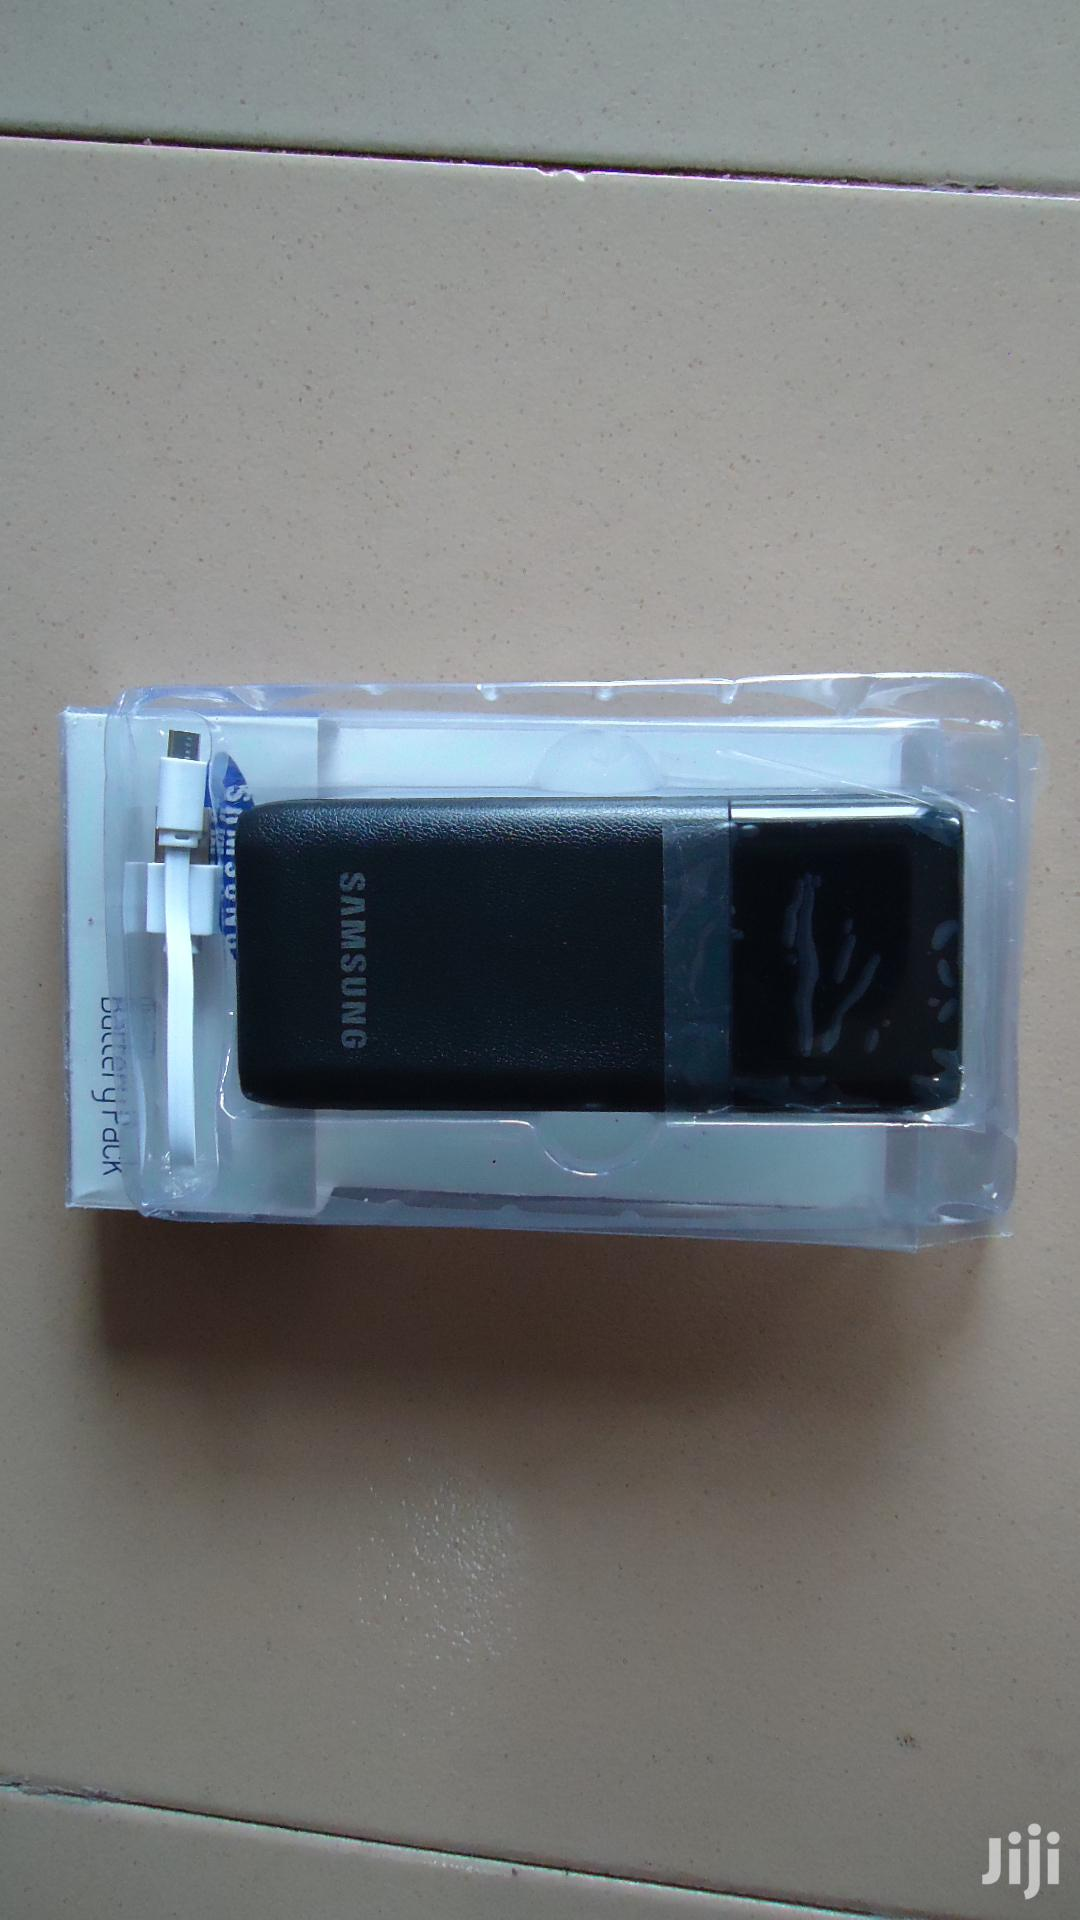 Original Samsung 30,000mah Power Bank | Accessories for Mobile Phones & Tablets for sale in Tamale Municipal, Northern Region, Ghana